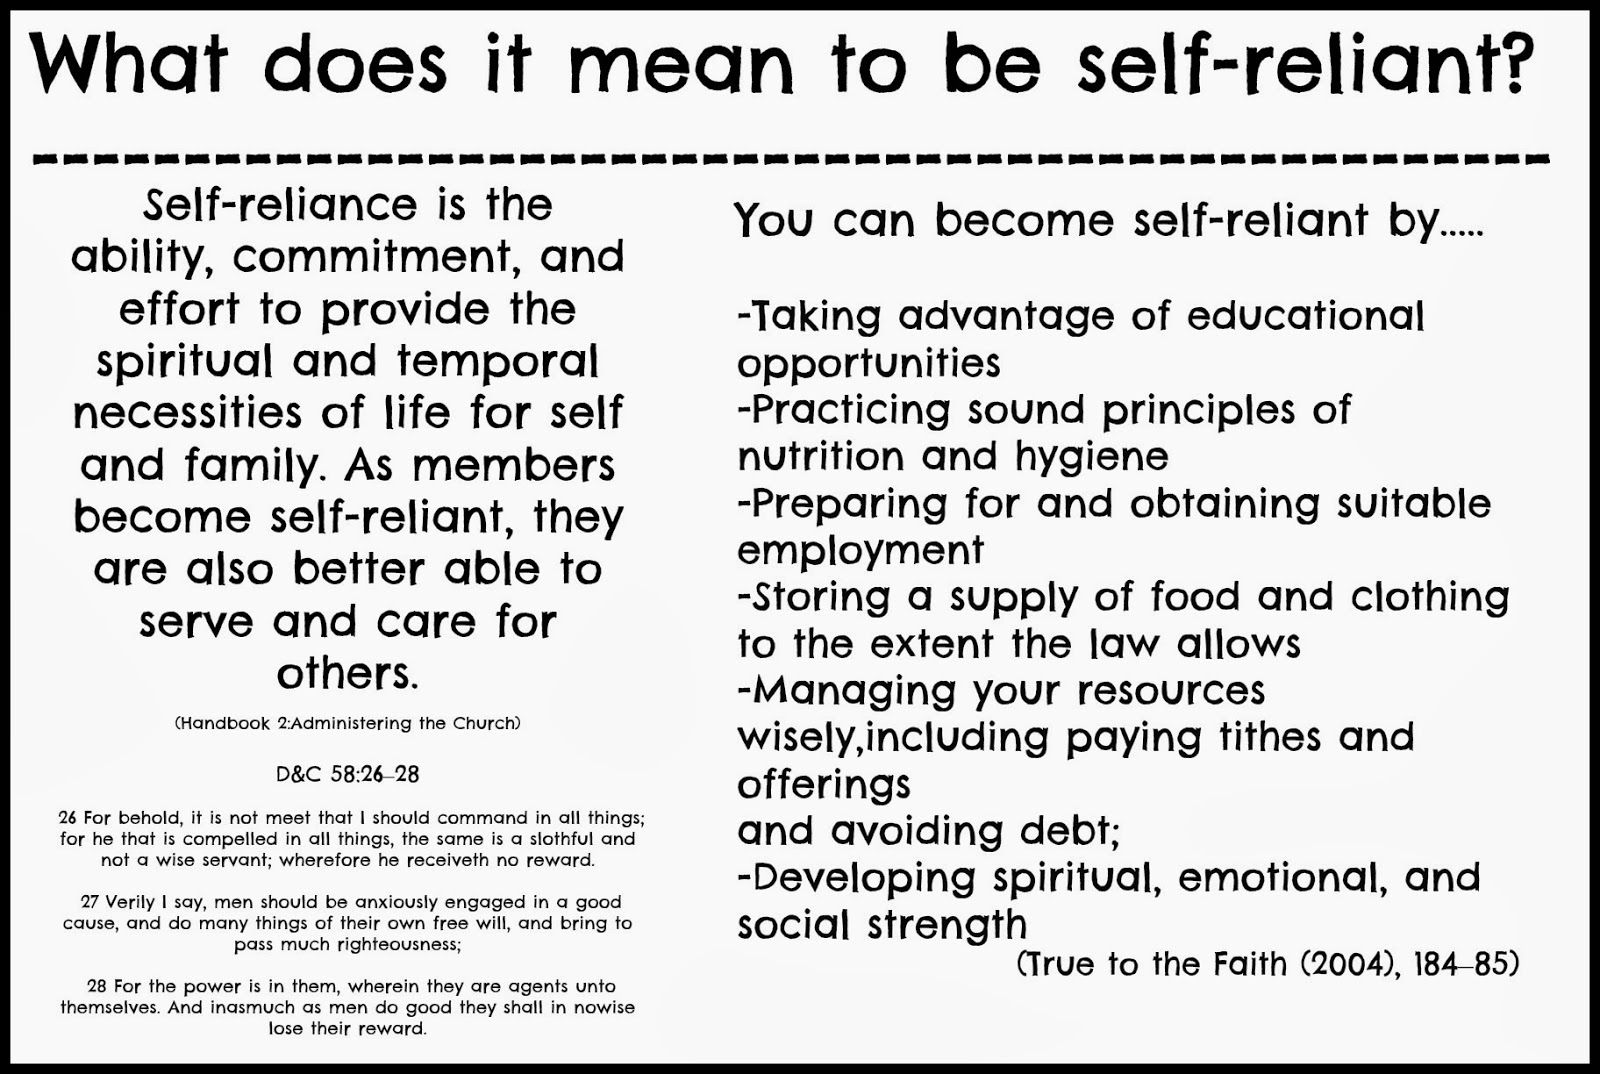 self reliance essay examples Get an answer for 'choose a metaphor from self-reliance and discuss how this metaphor can be used to understand the essay as a whole self-reliance by ralph waldo emerson' and find homework help for other self-reliance questions at enotes.